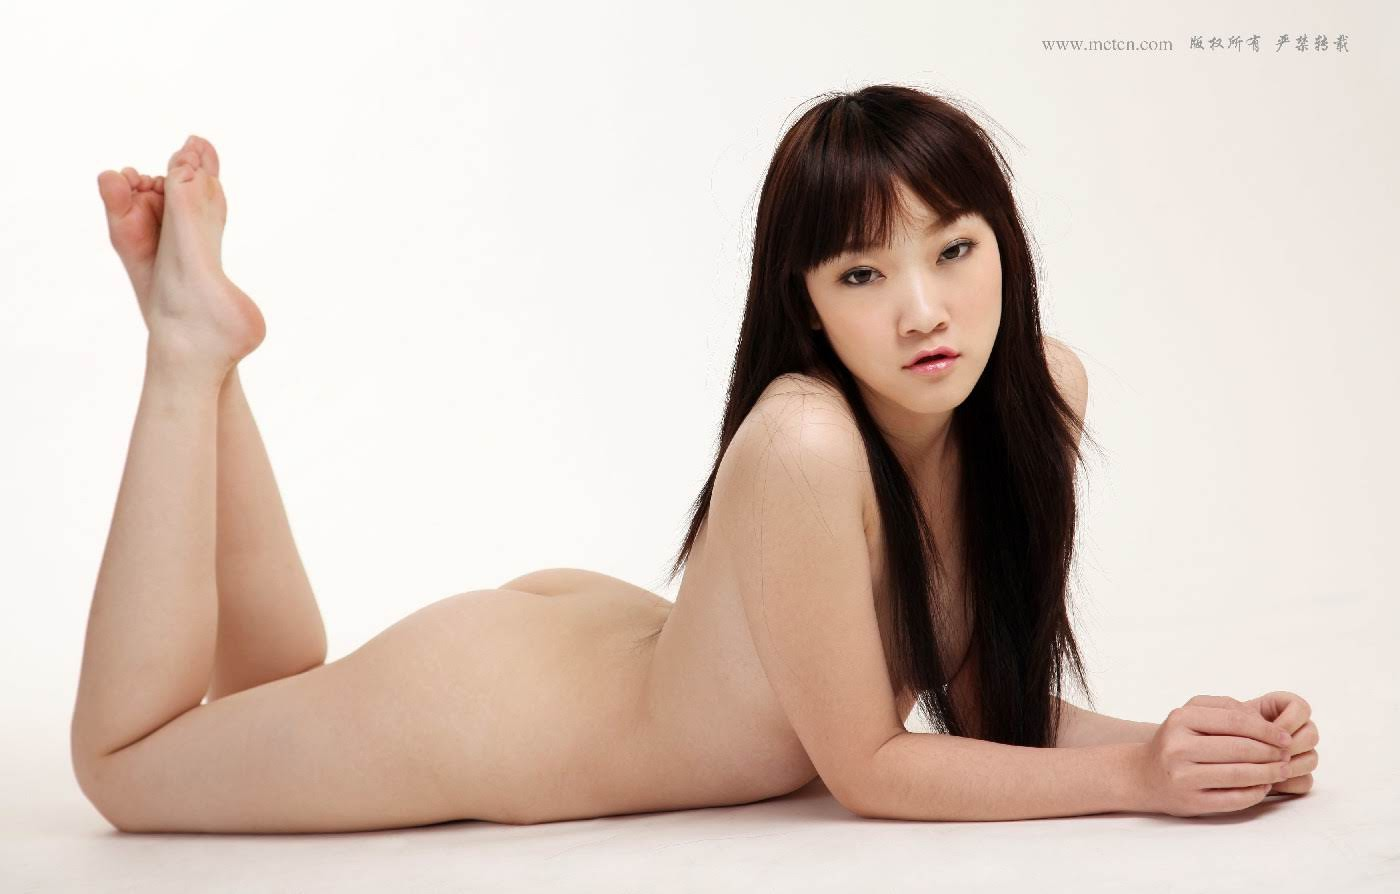 MetCN Naked_Girls-071-2009-07-15-Yu-Wen re metcn1 metcn 04160